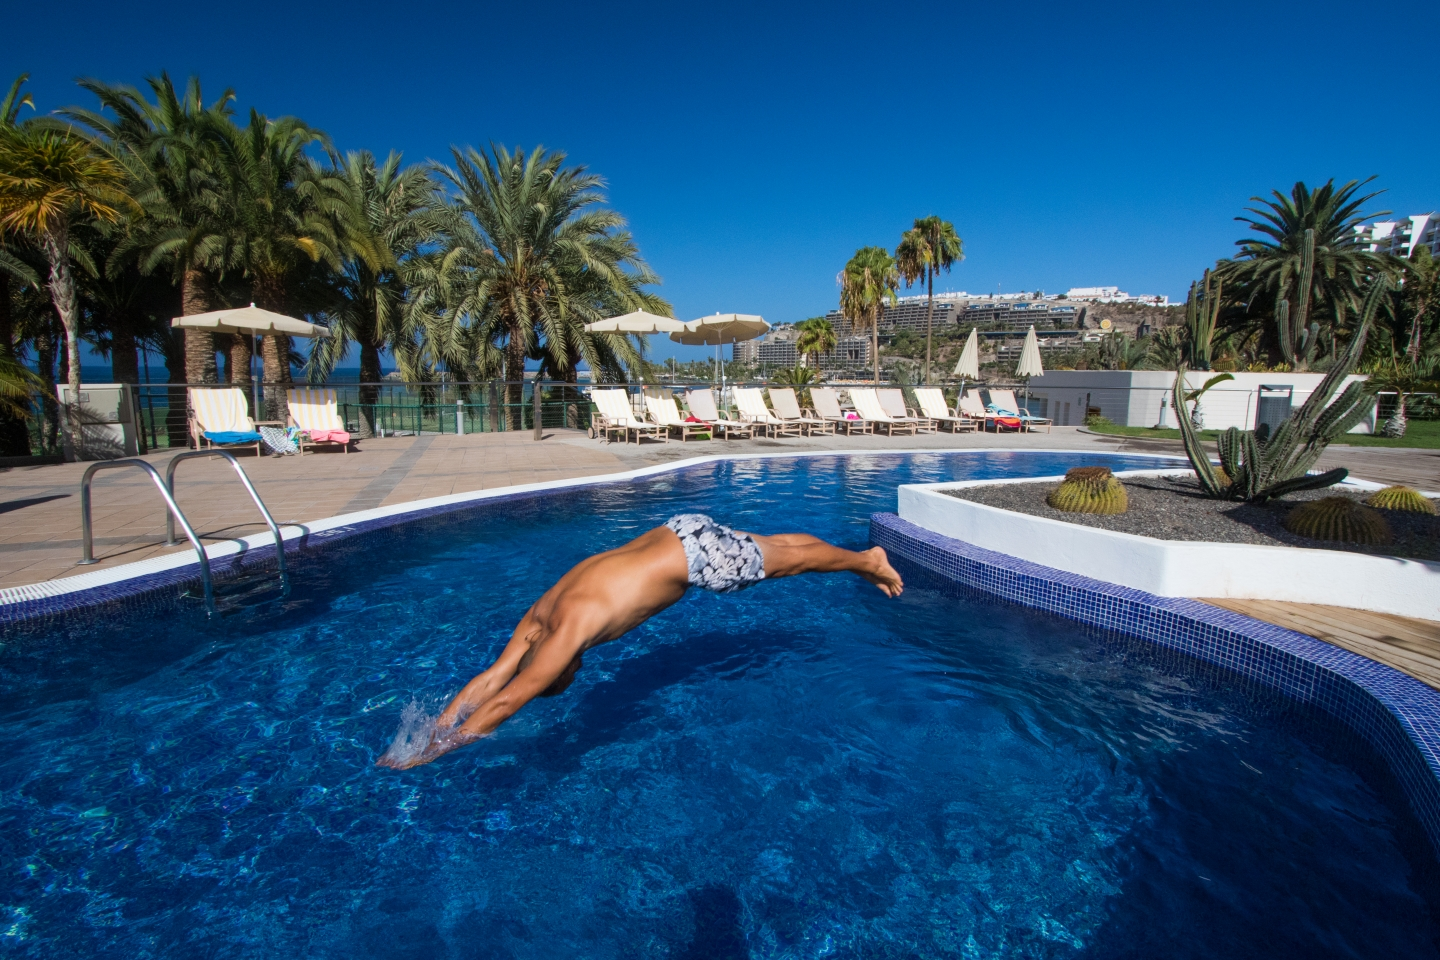 Radisson Blu swimming pool in Gran Canaria